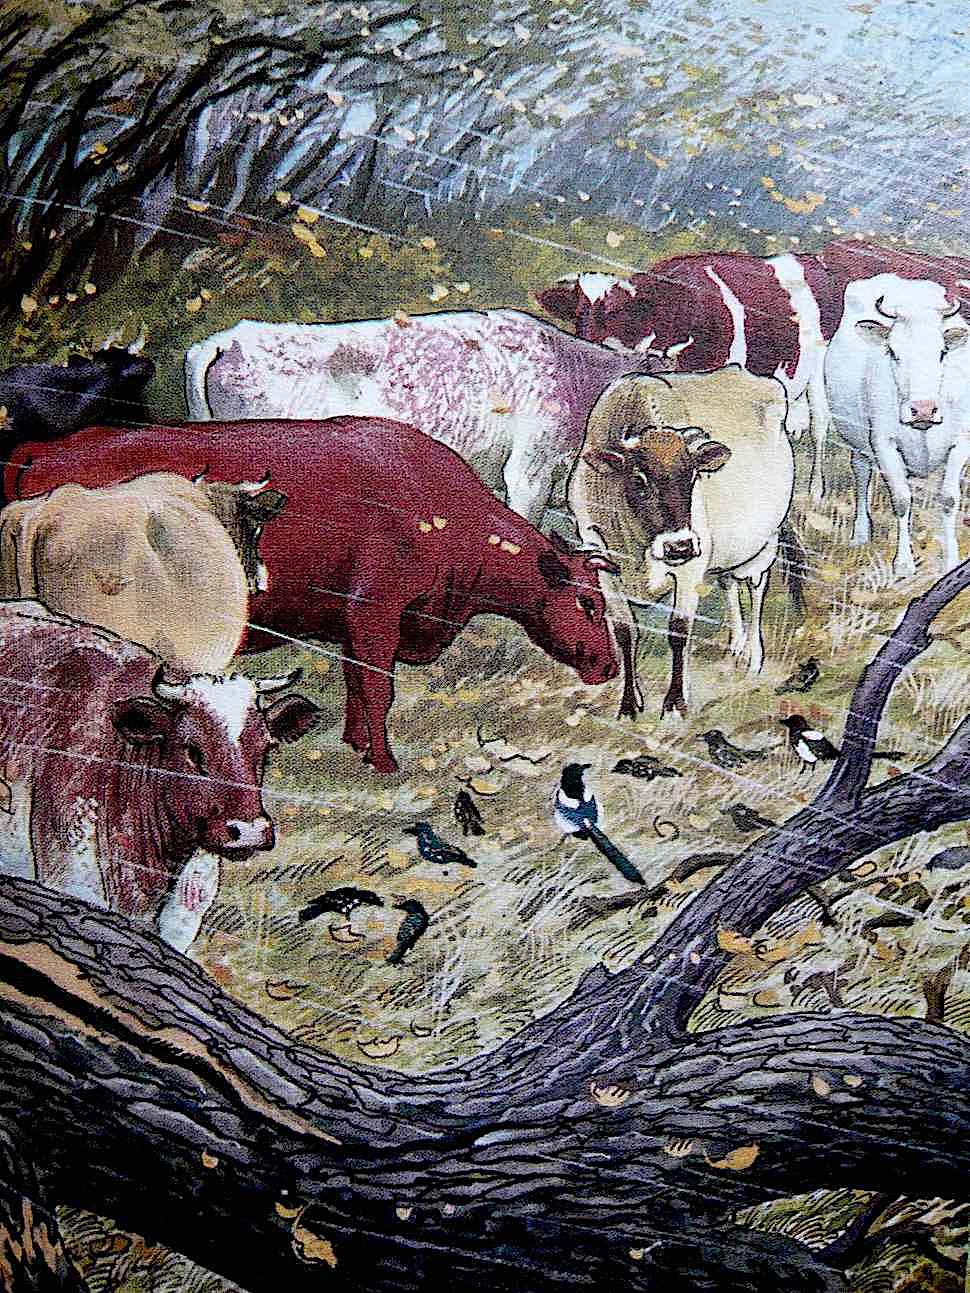 a Charles F. Tunnicliffe illustration of cows in bad weather